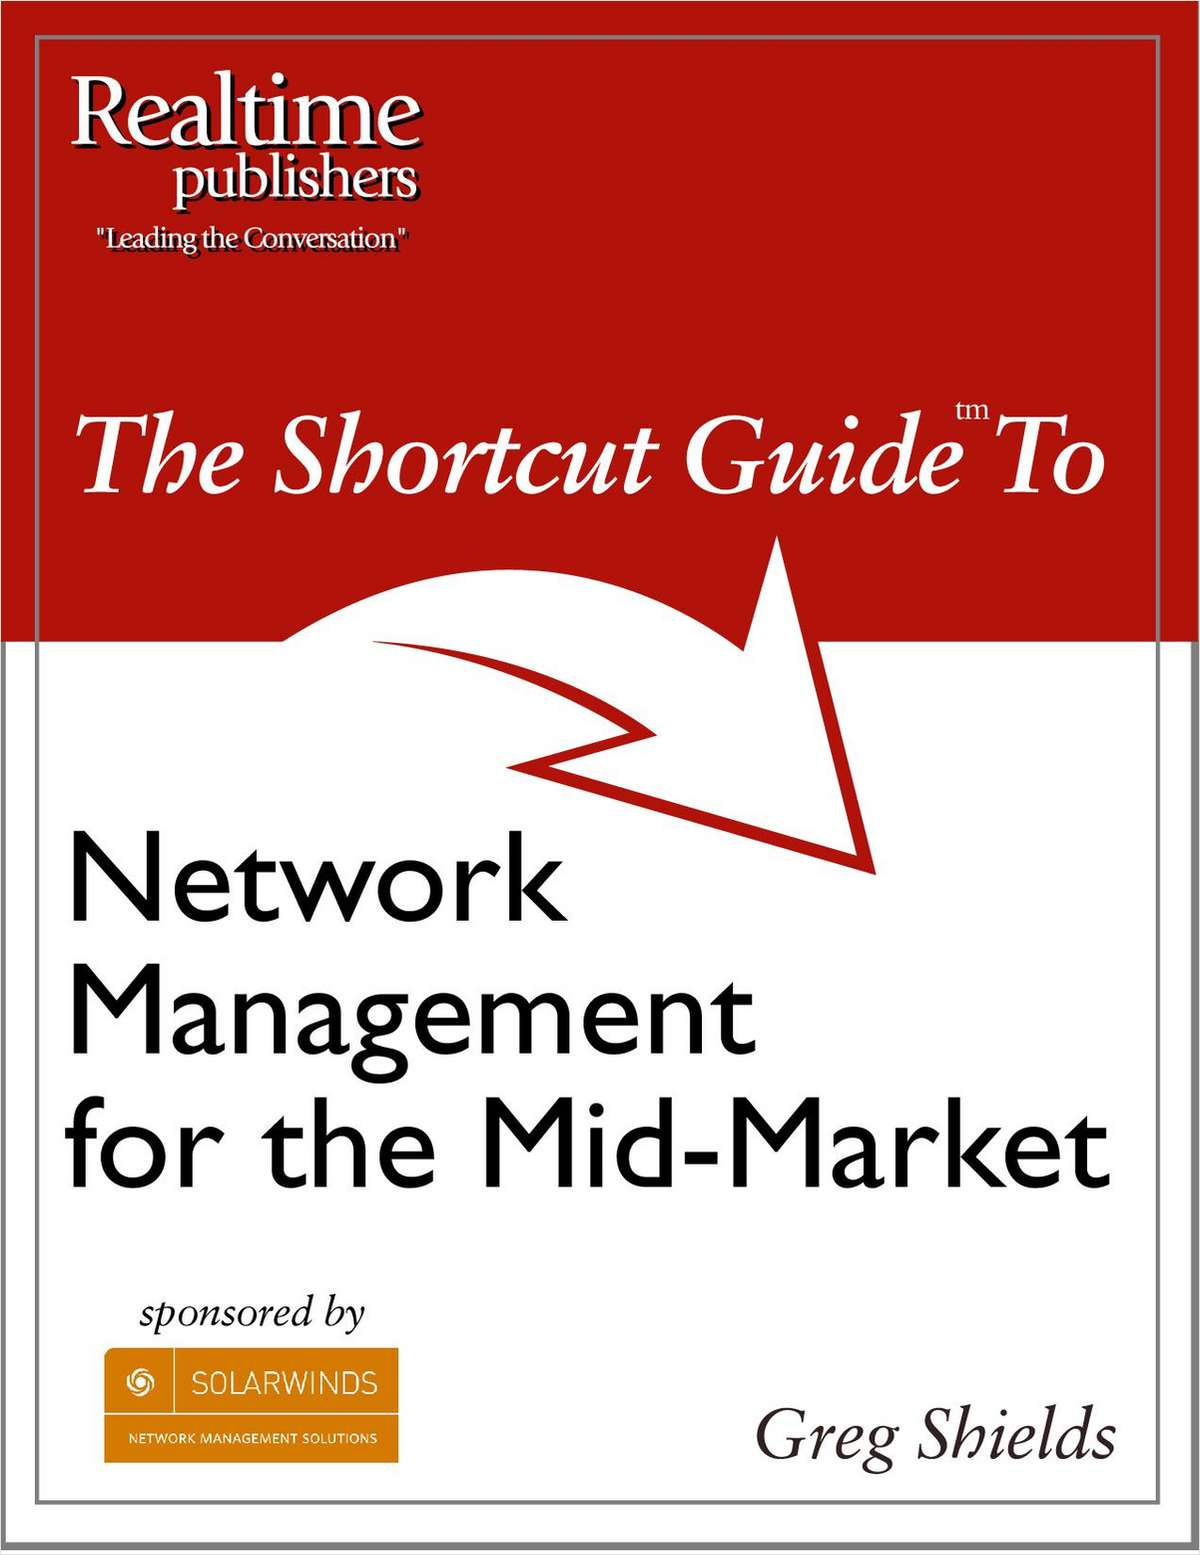 The Shortcut Guide to Network Management